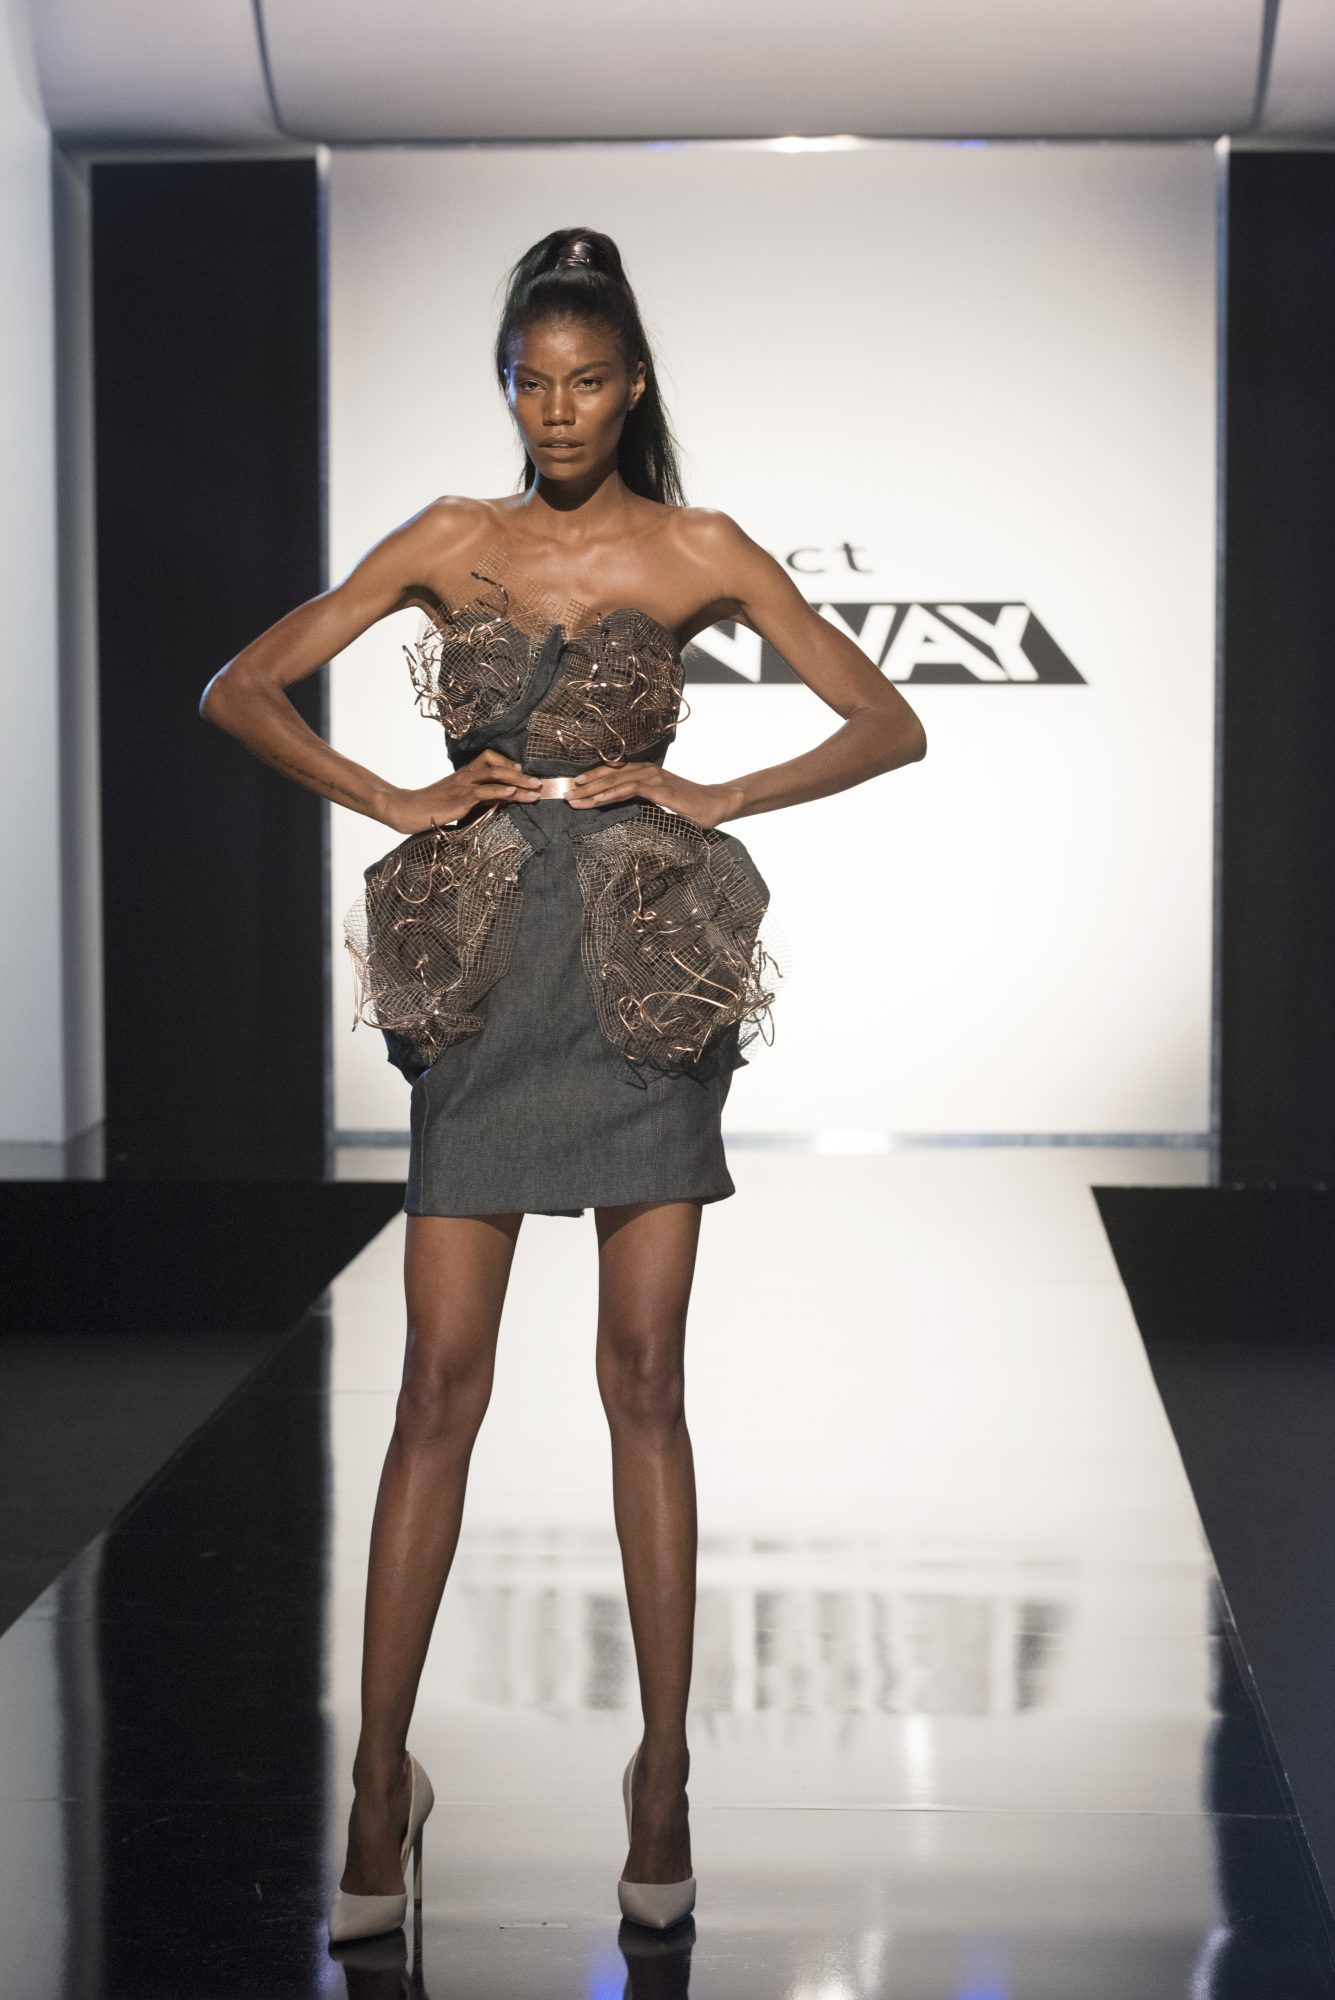 Project Runway season 15, episode 11, Mah-Jing look